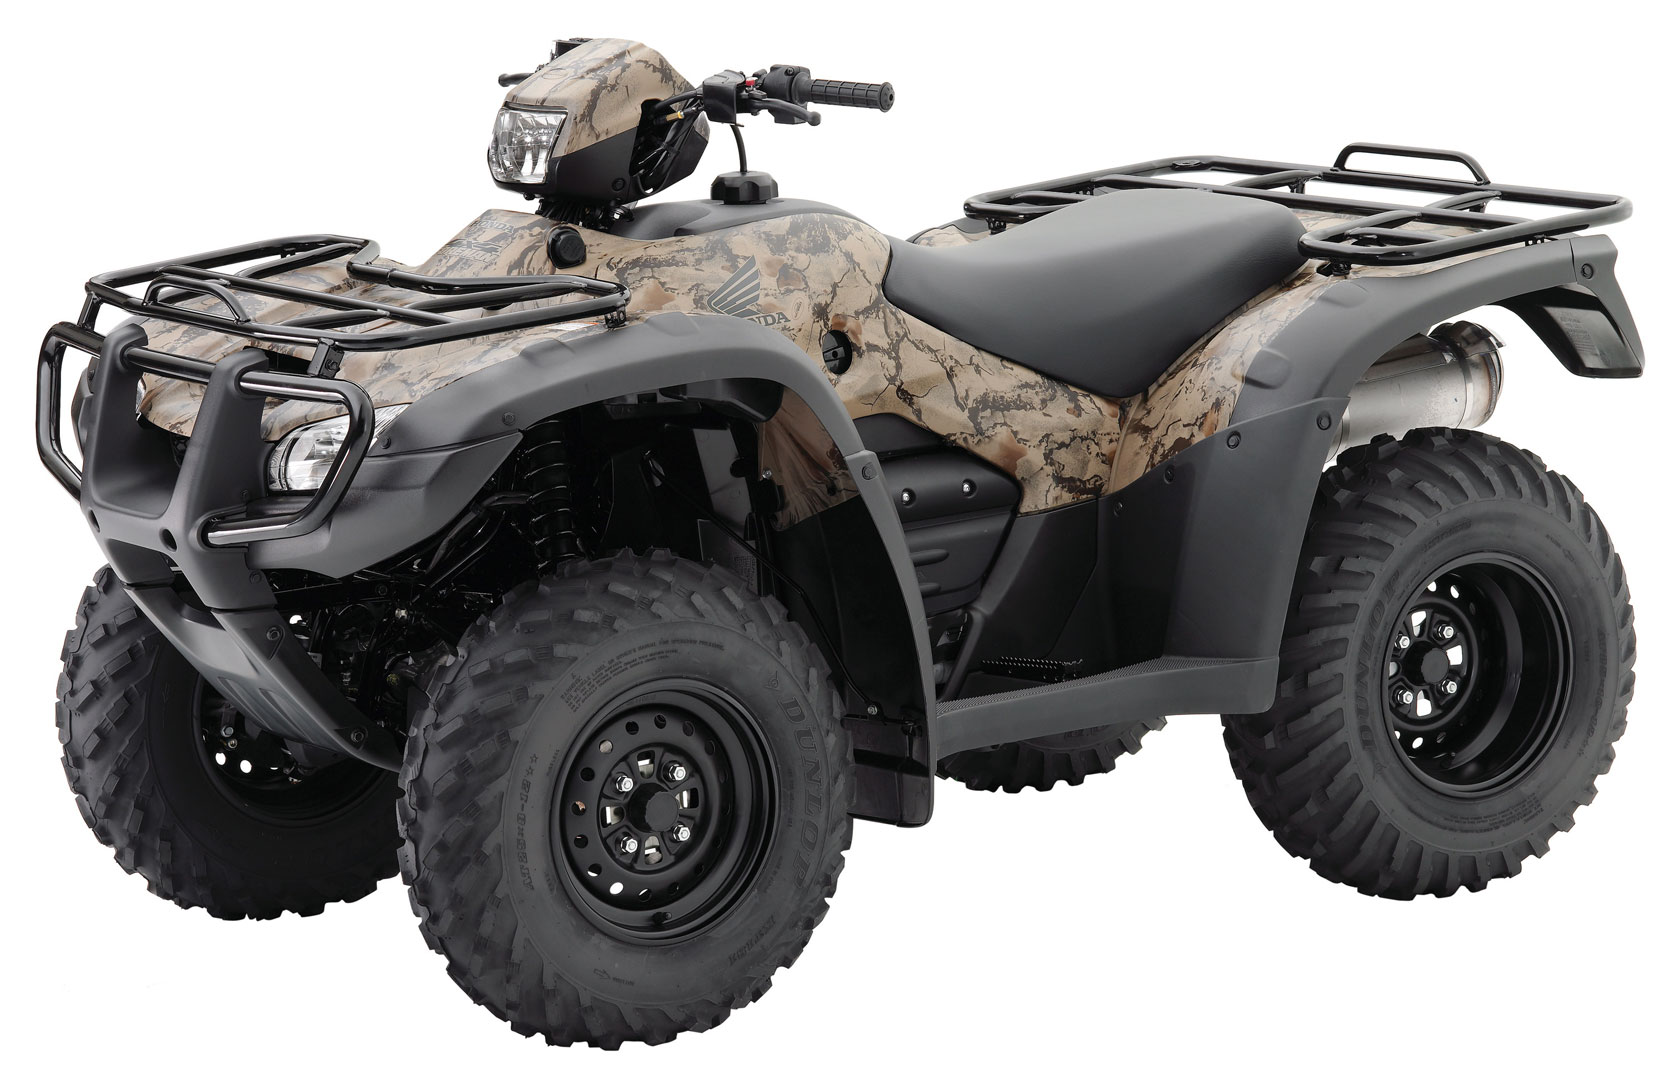 Honda Foreman 450 Fuse Box Trusted Wiring Diagrams 2006 Polaris Sportsman 2010 500 Diagram U2022 Atv Recall